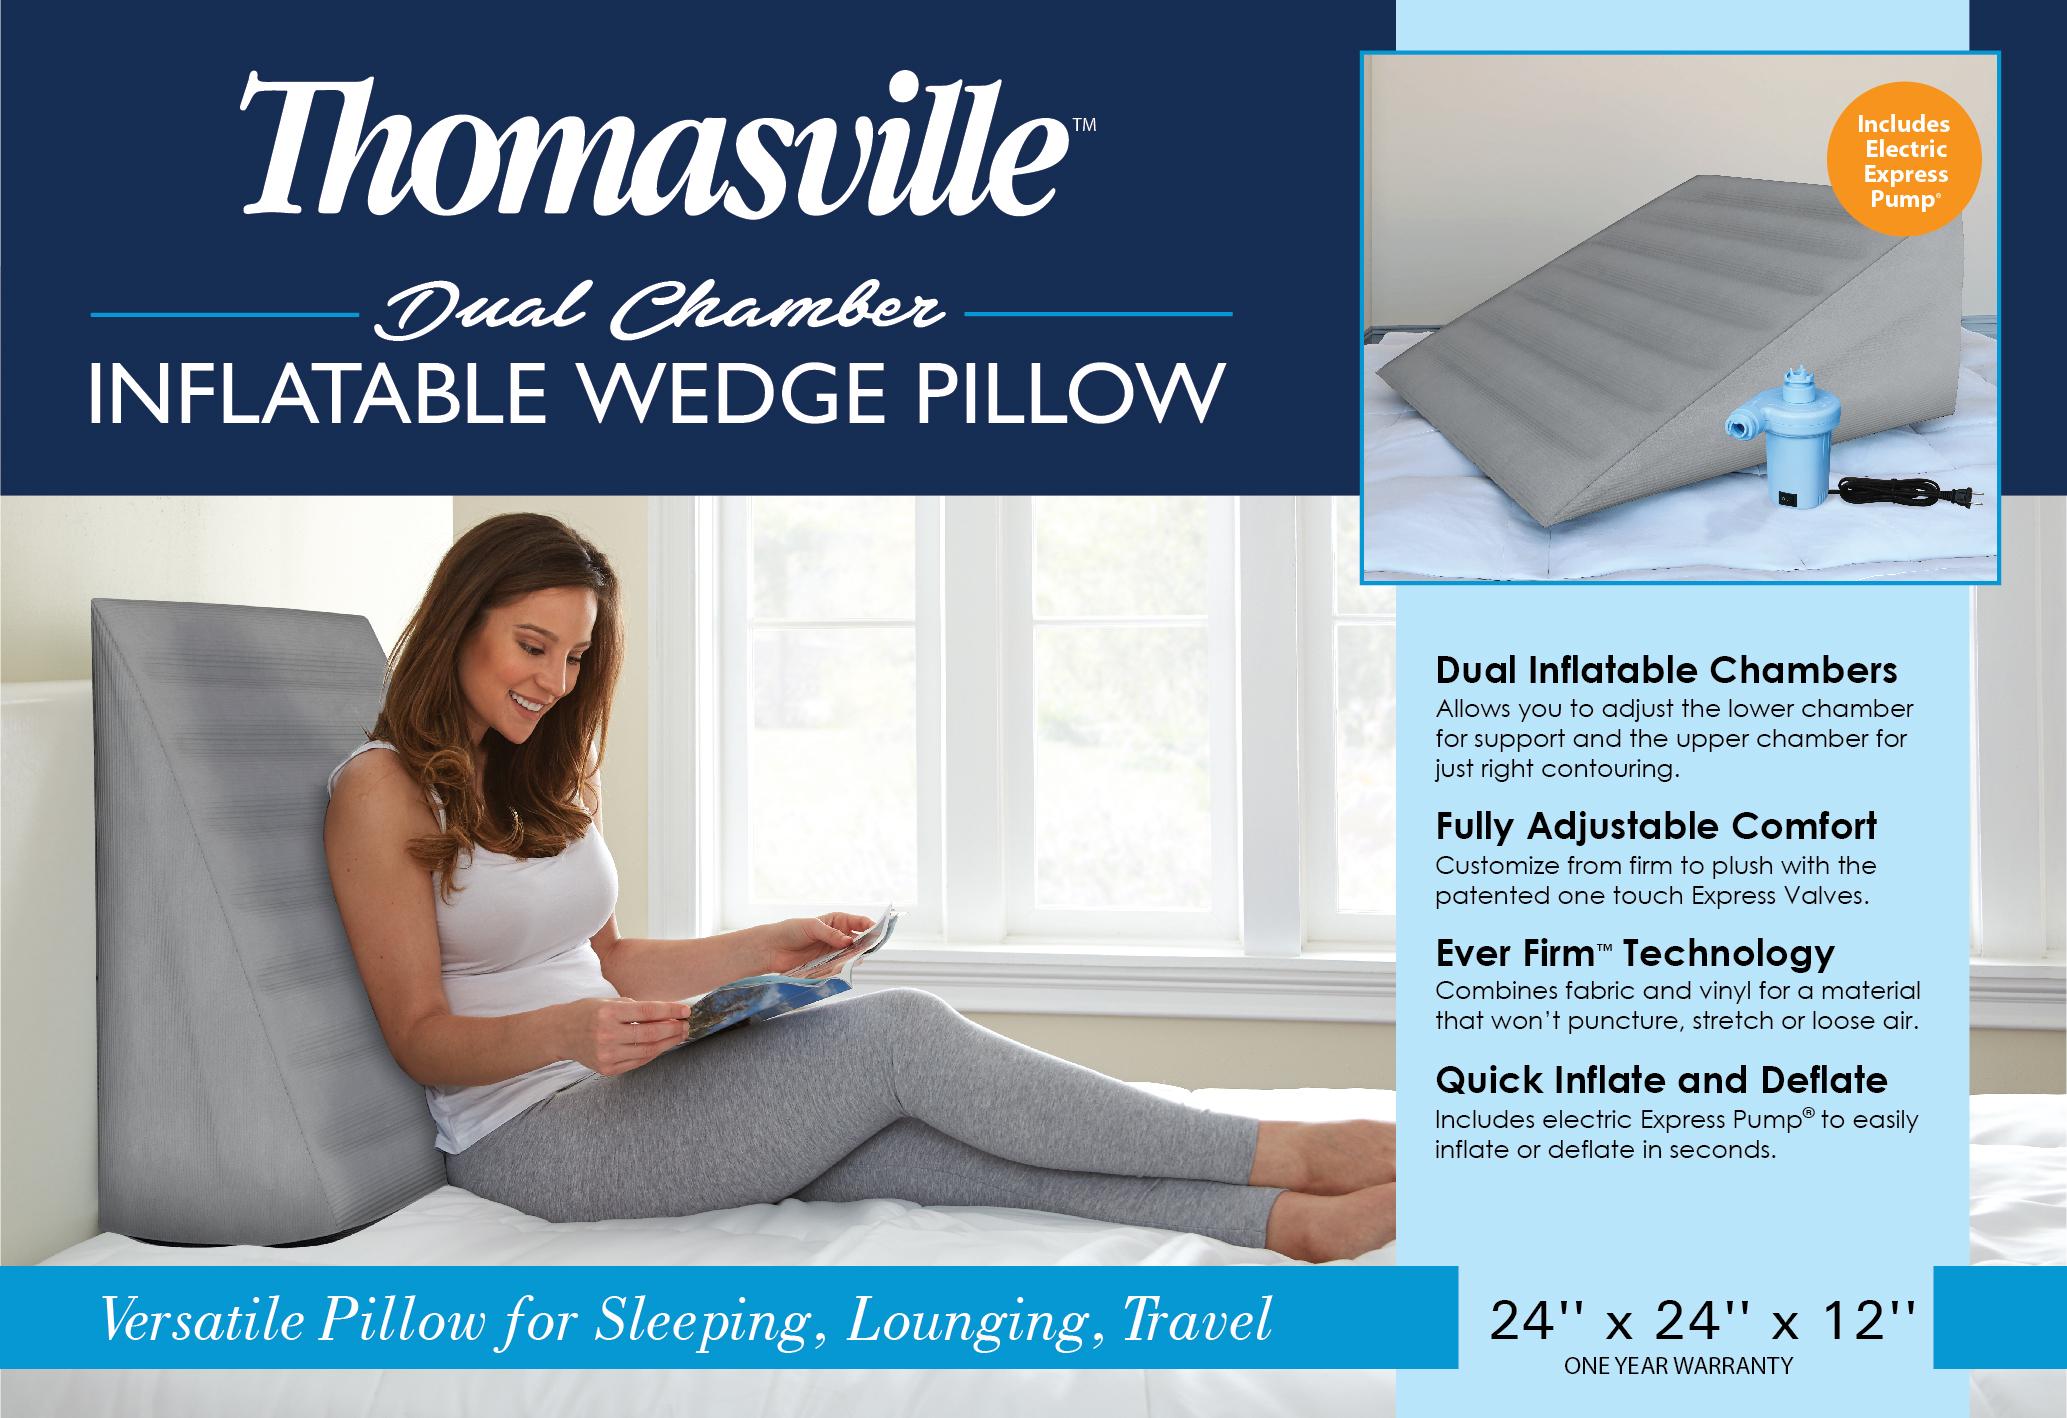 thomasville inflatable air wedge pillow gray